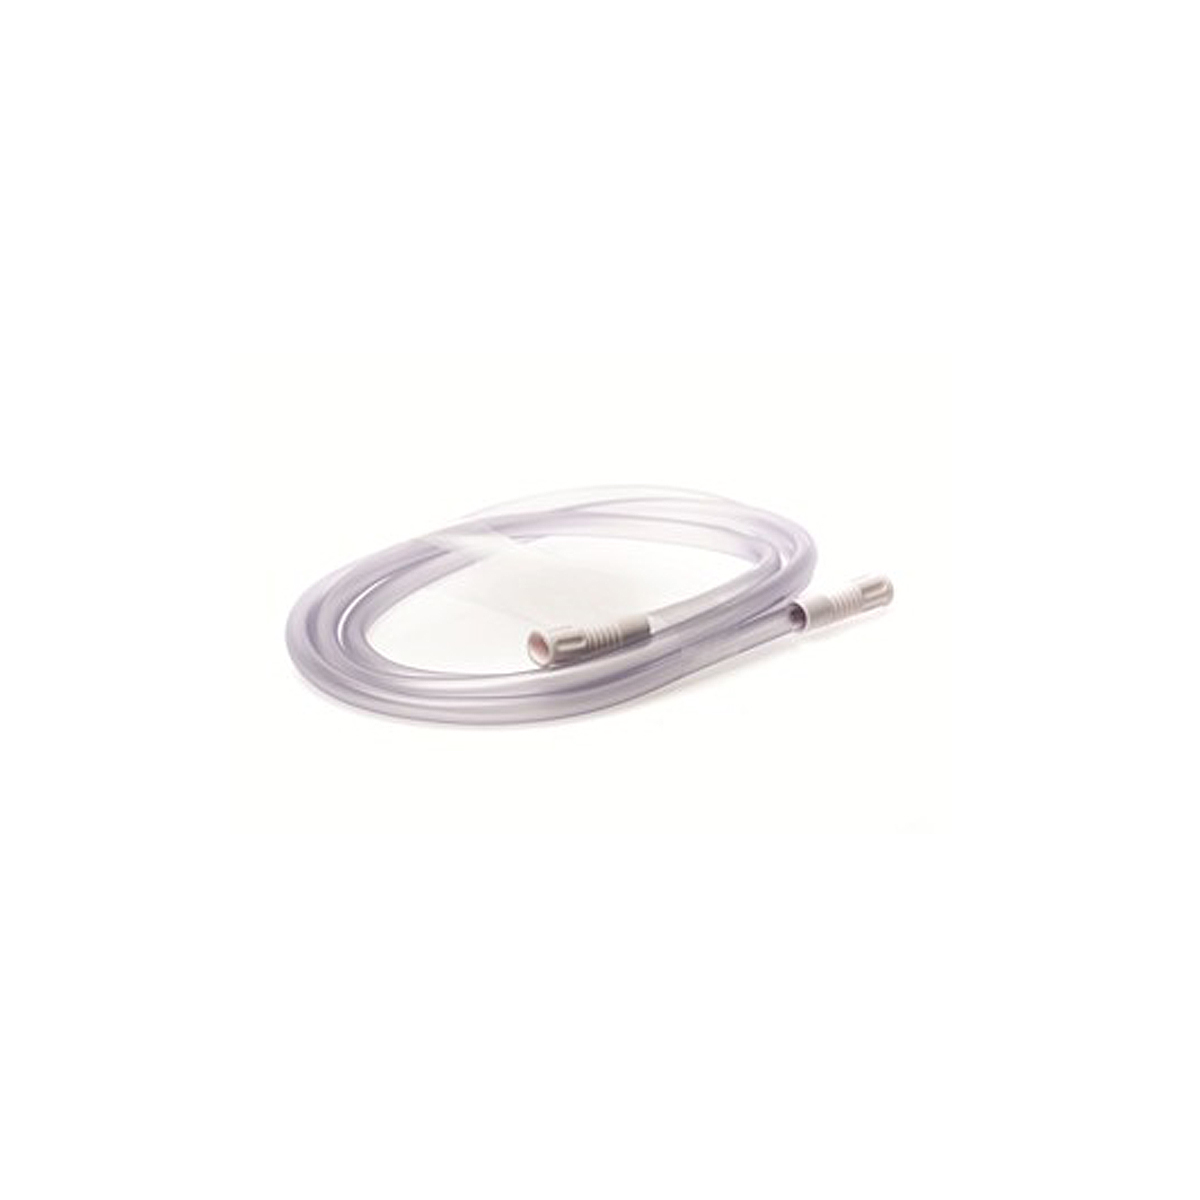 Disposable Patient Suction Tubing for Laerdal Suction Unit